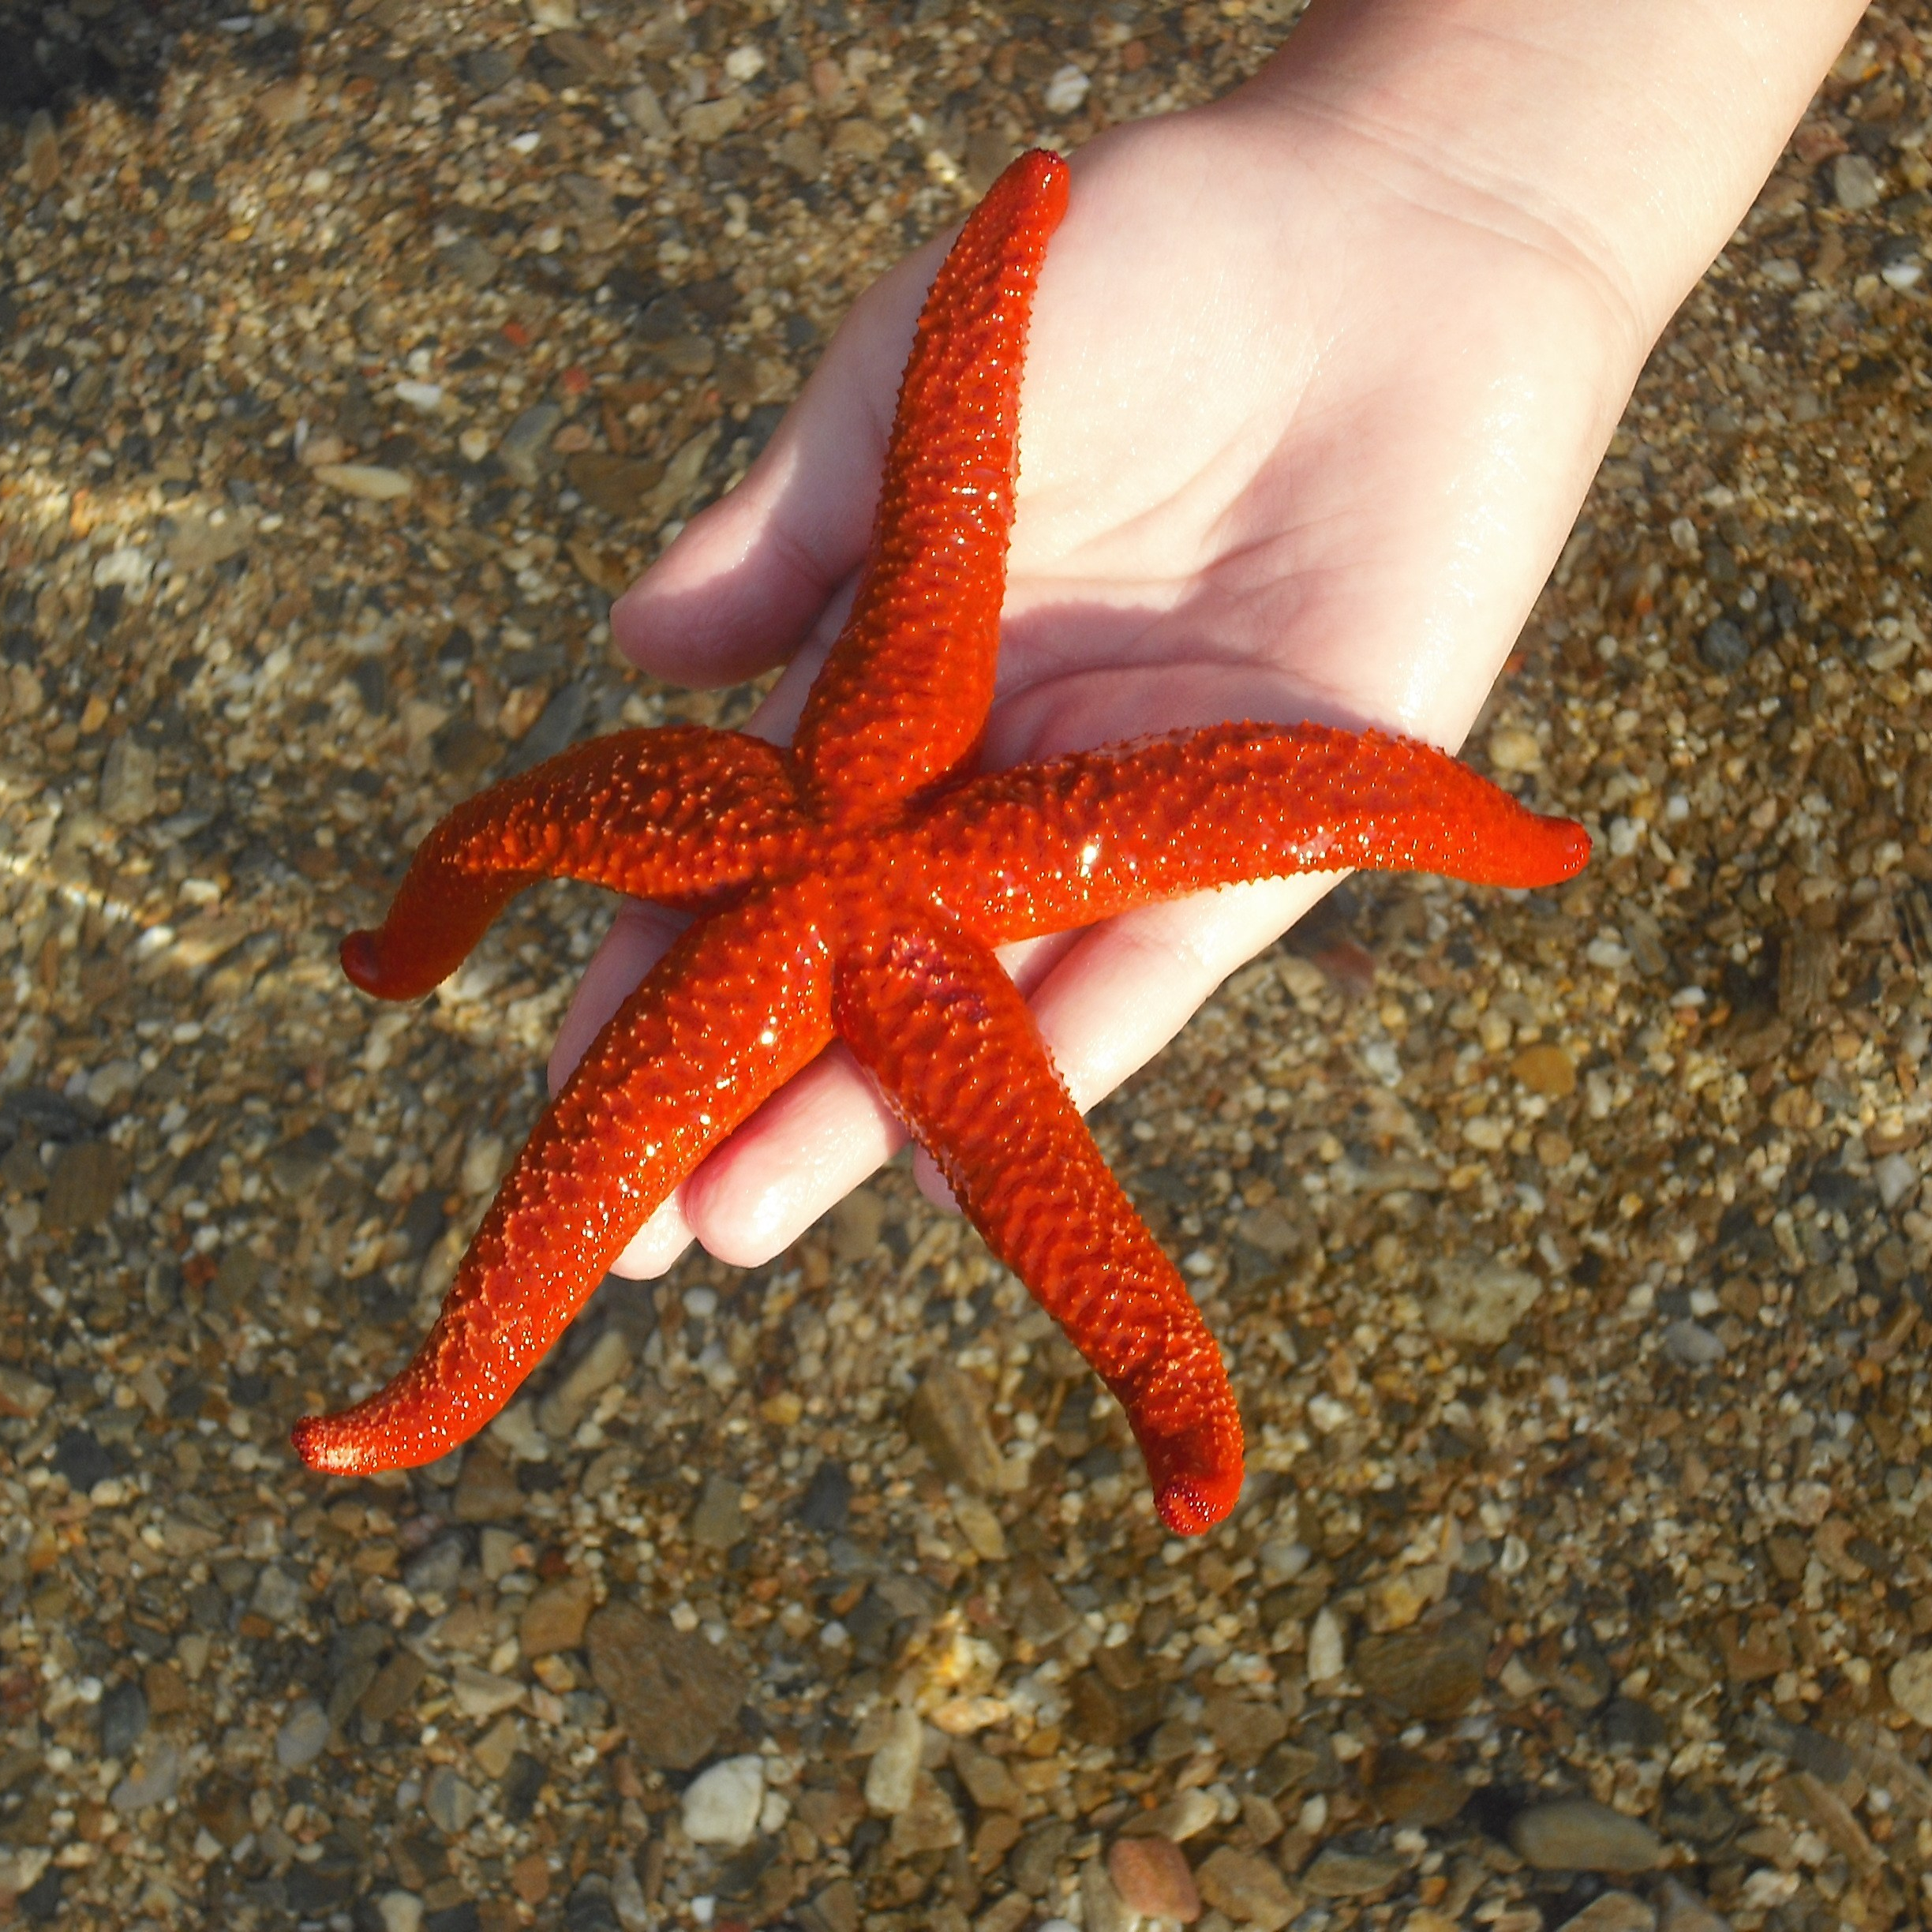 A hand shows a red starfish over sand and clear water